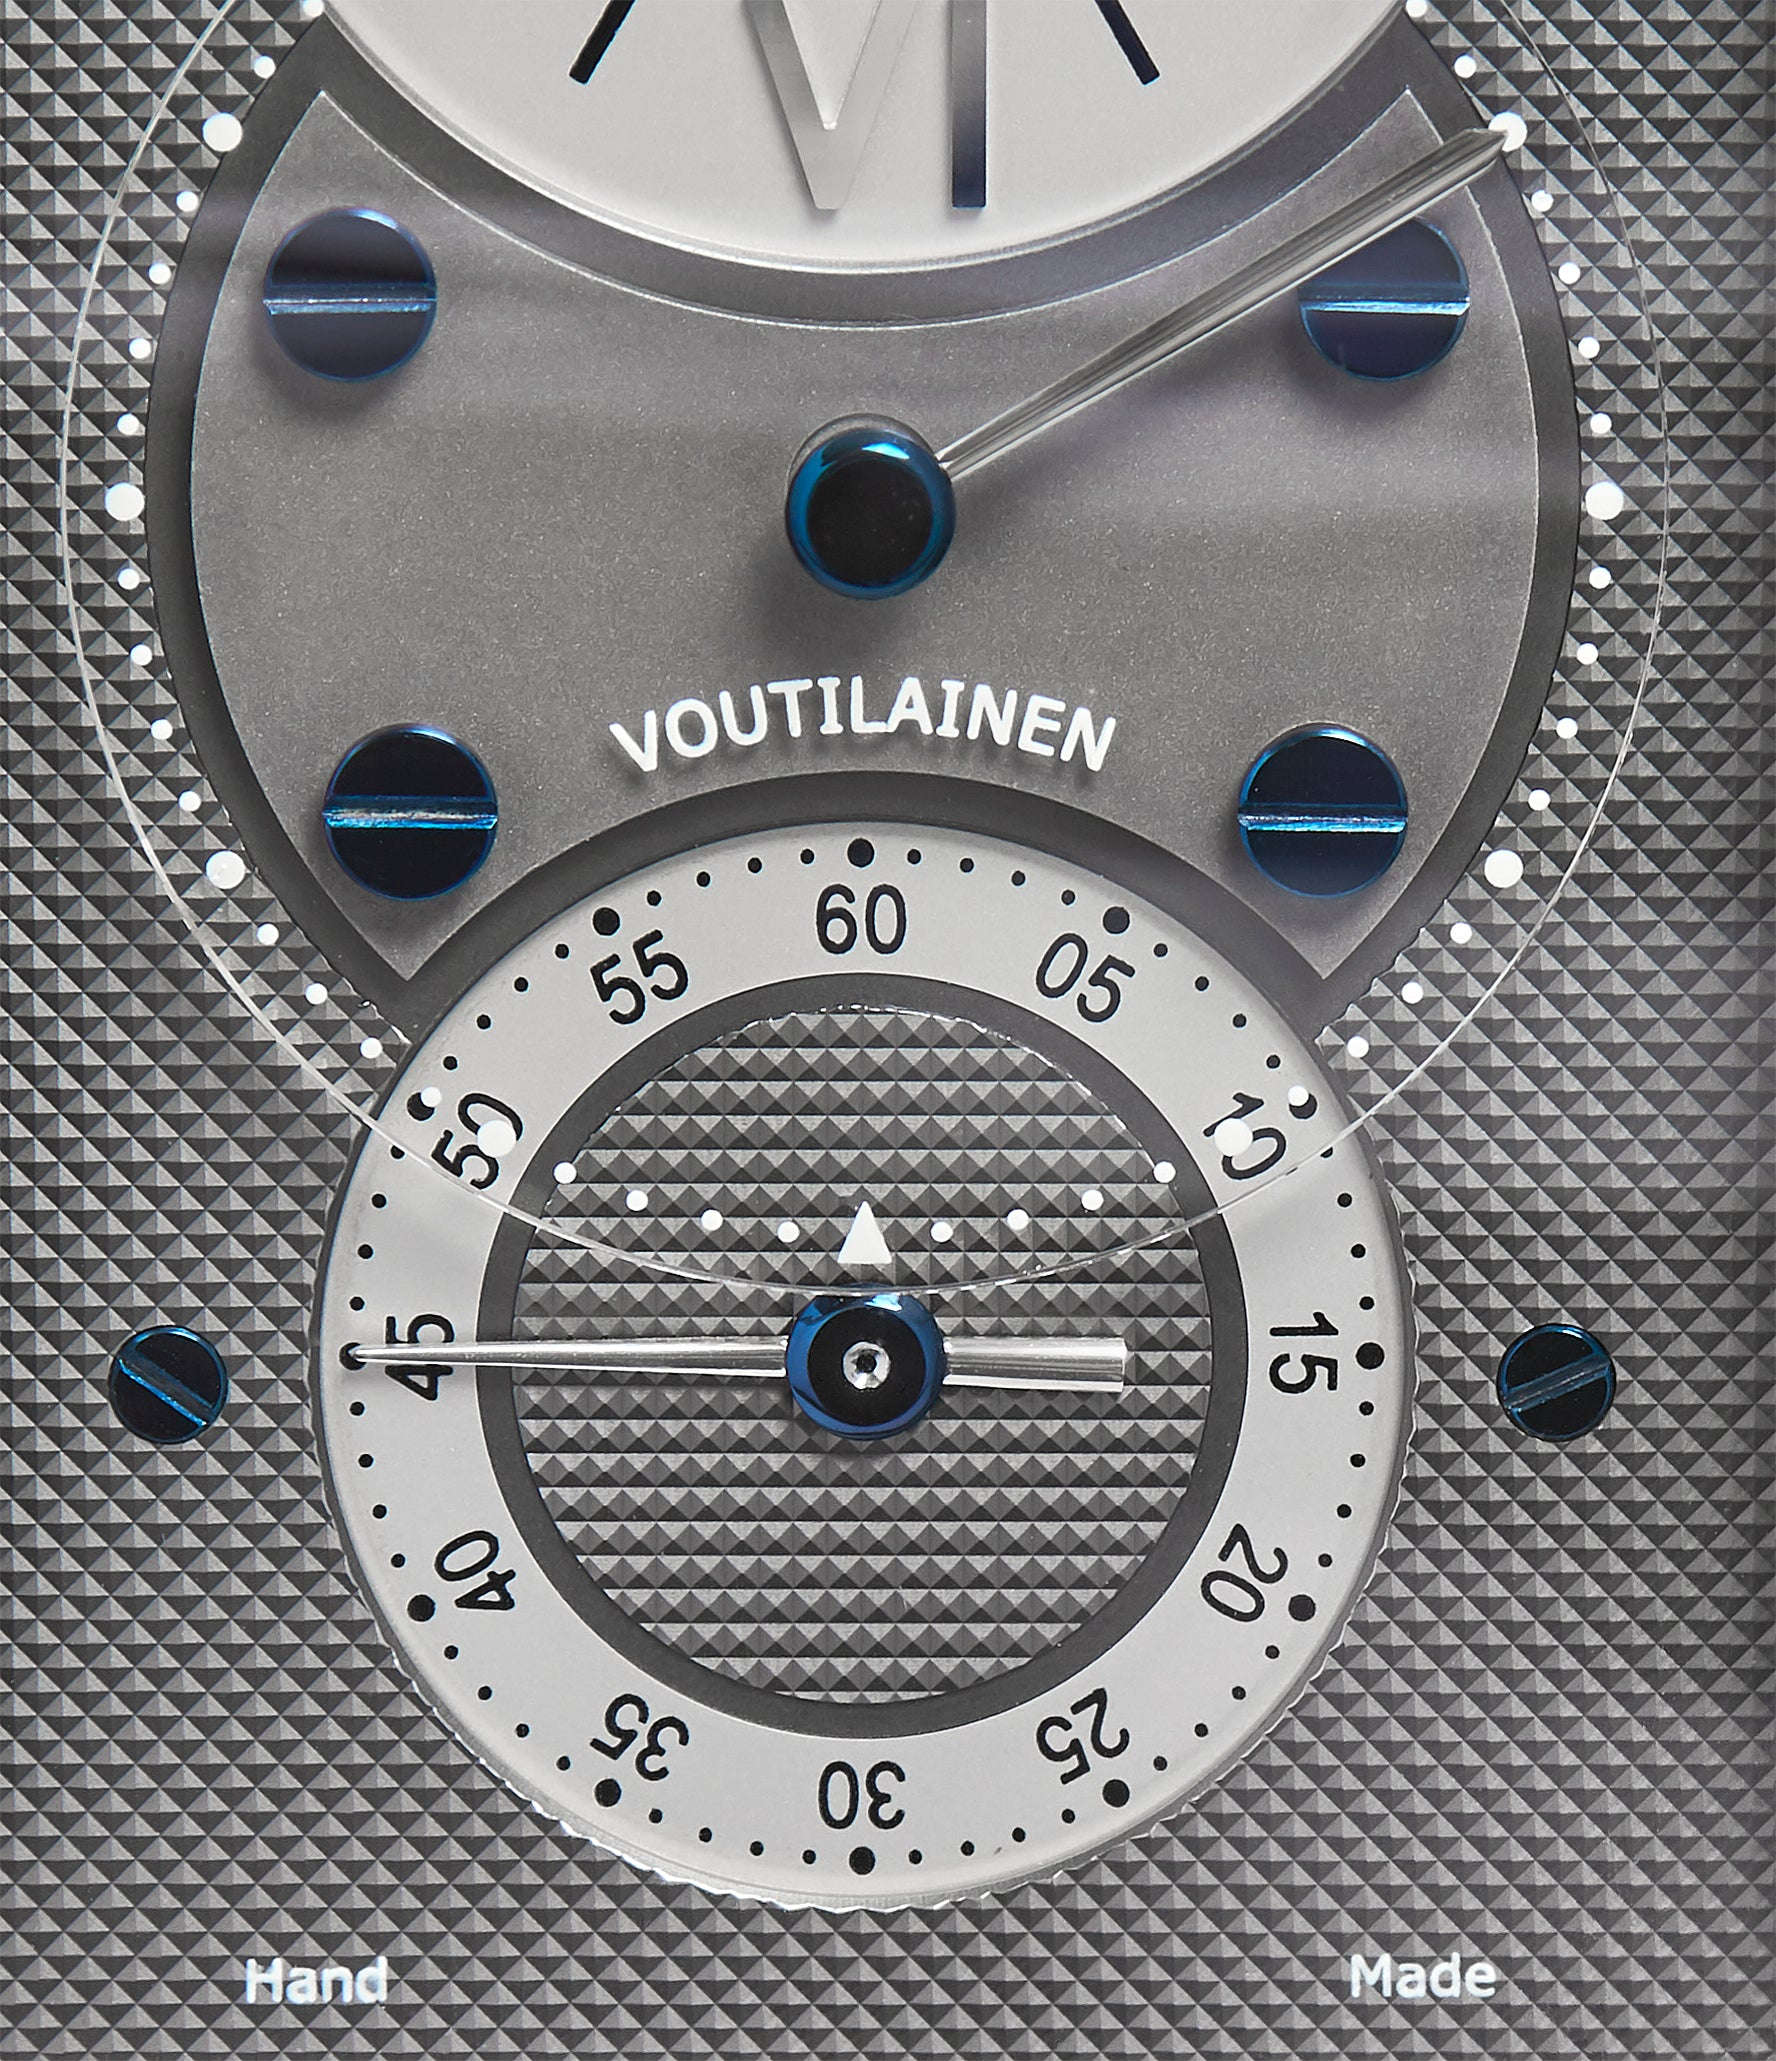 buy Voutilainen 27 Chronometre white gold Limited Edition white gold watch by Kari Voutilainen for sale online at approved re-seller A Collected Man London UK specialist of rare watches